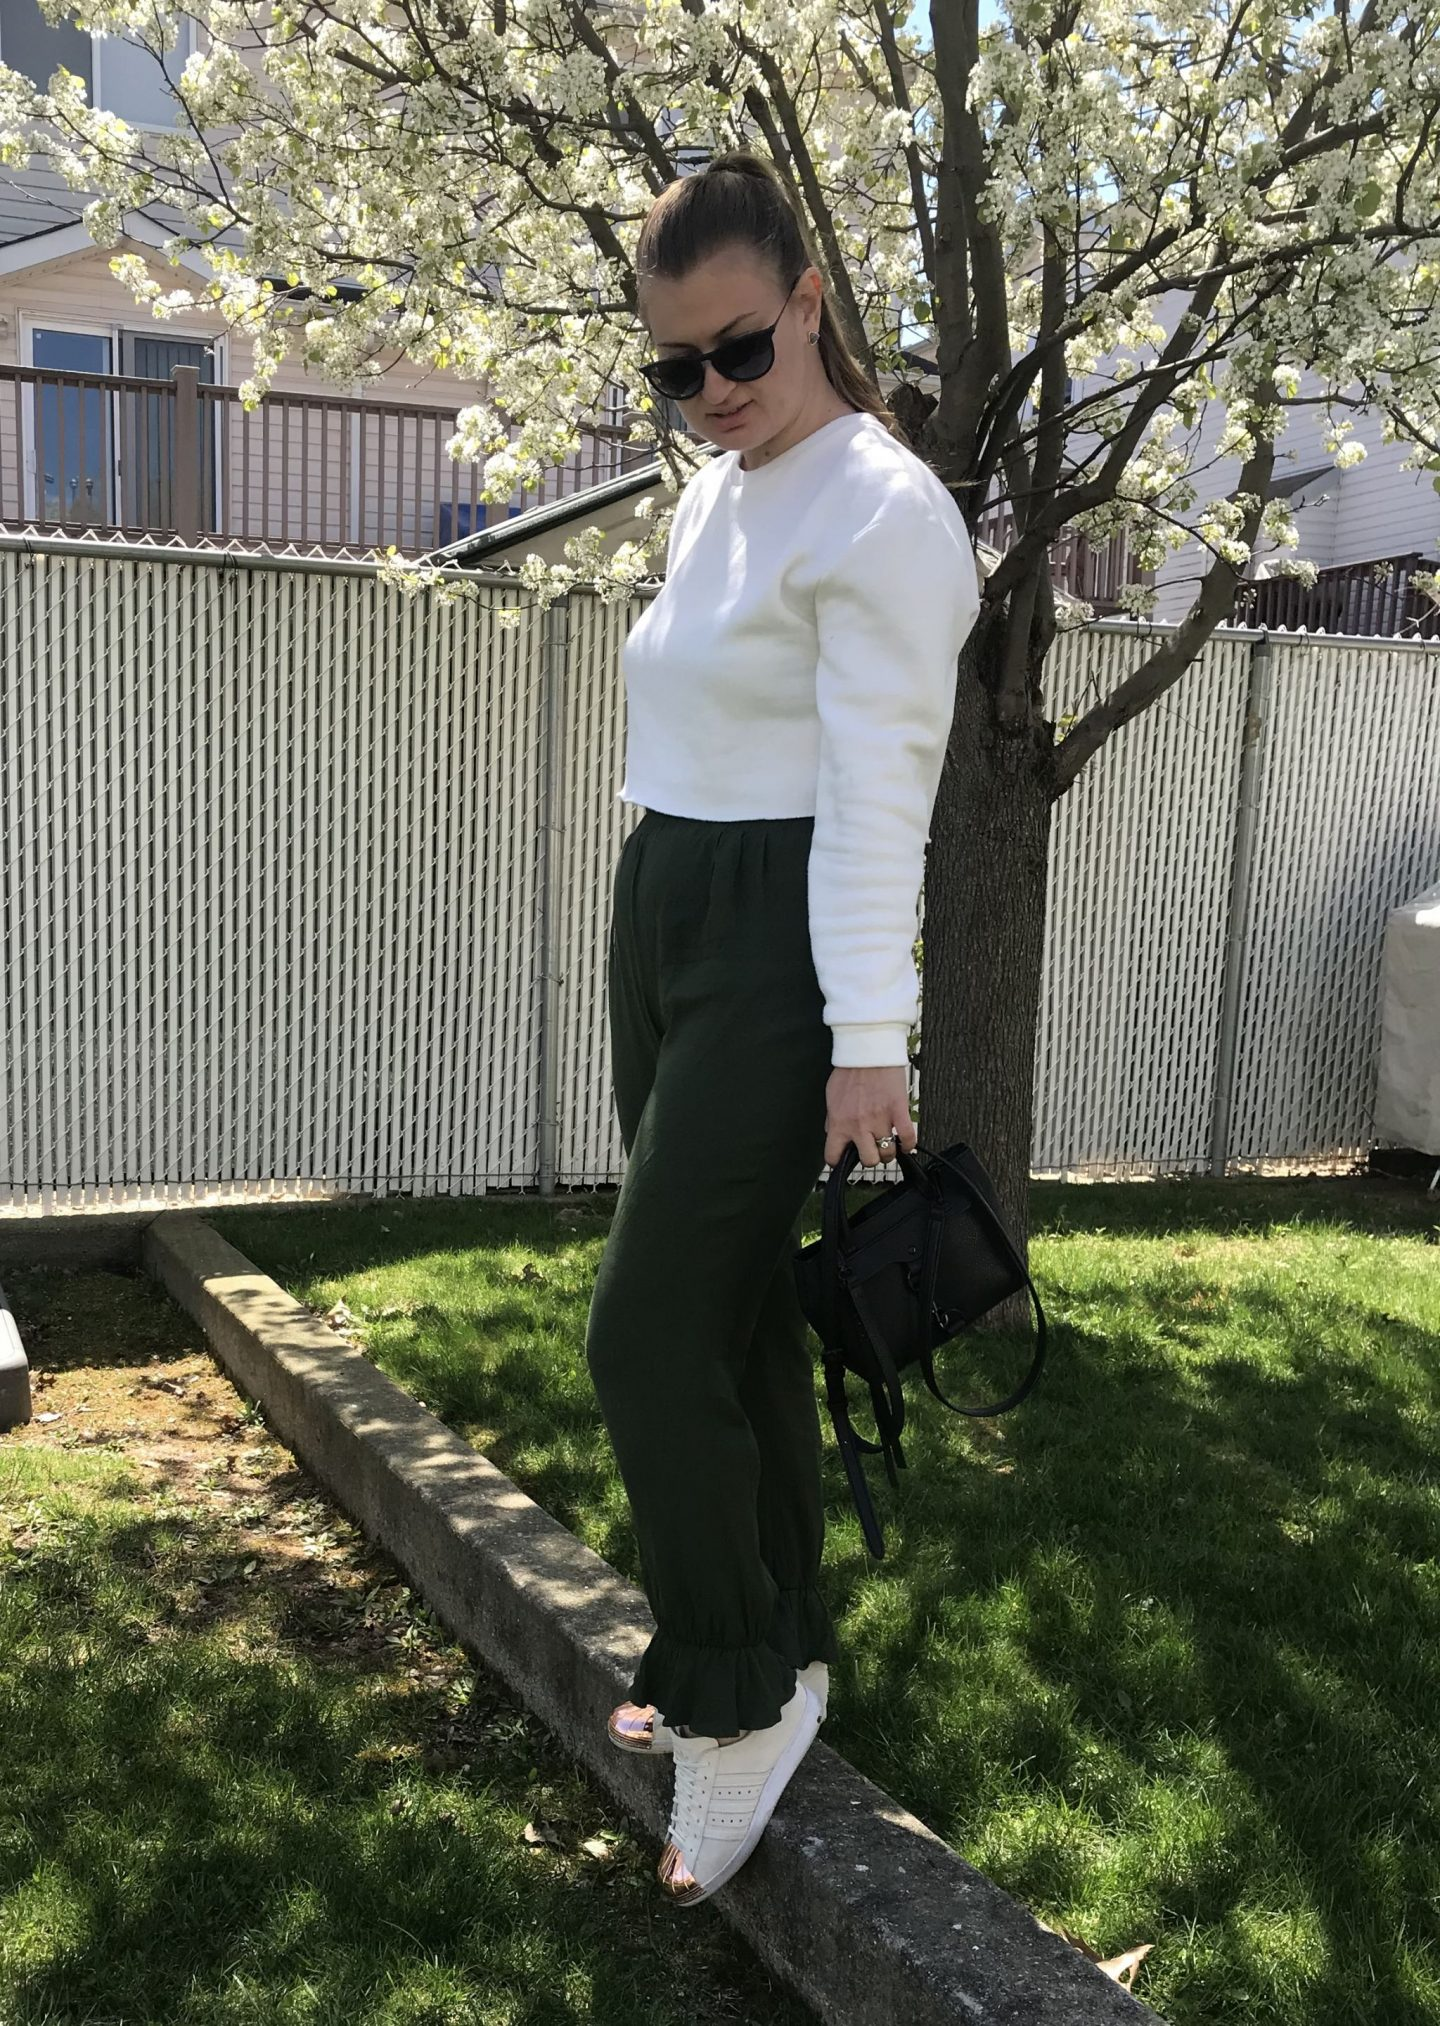 Day 16 – The EasilyDressed Challenge